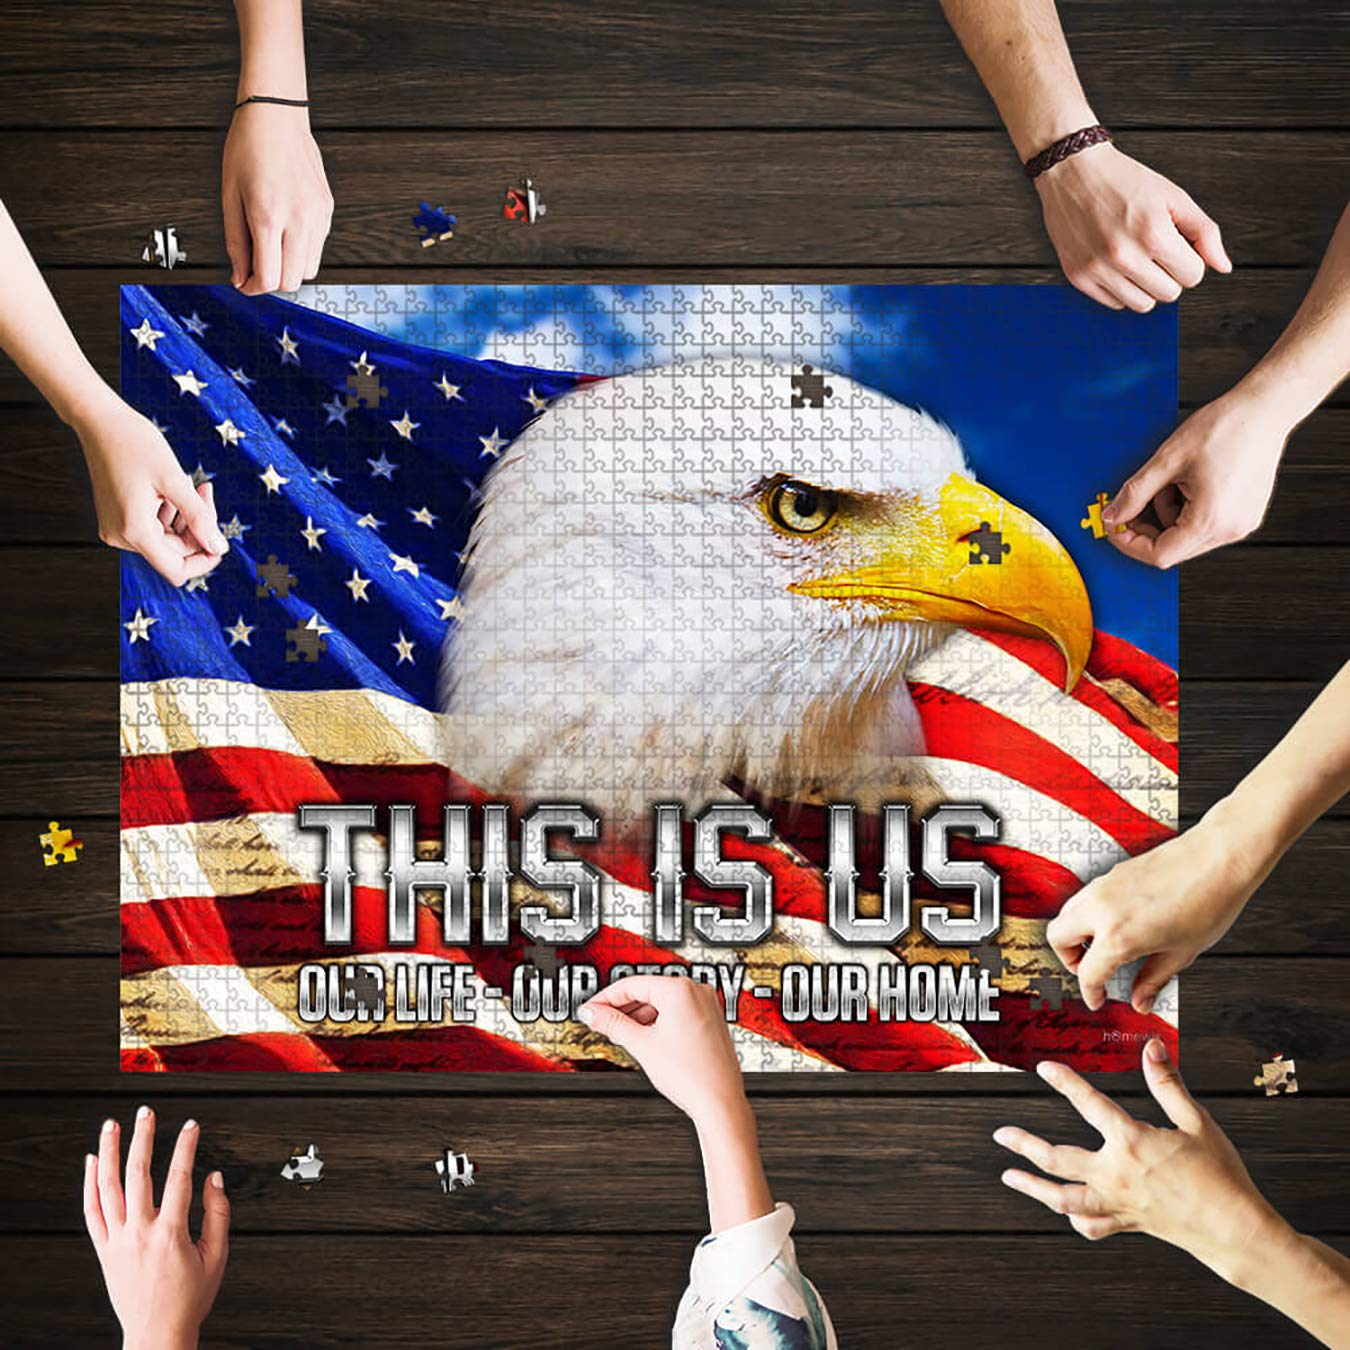 Puzzle Mat Adult Puzzles American Eagle Our Story Jigsaw Puzzle 192 Pieces Mod Podge Games for Adults Children Funny Gifts